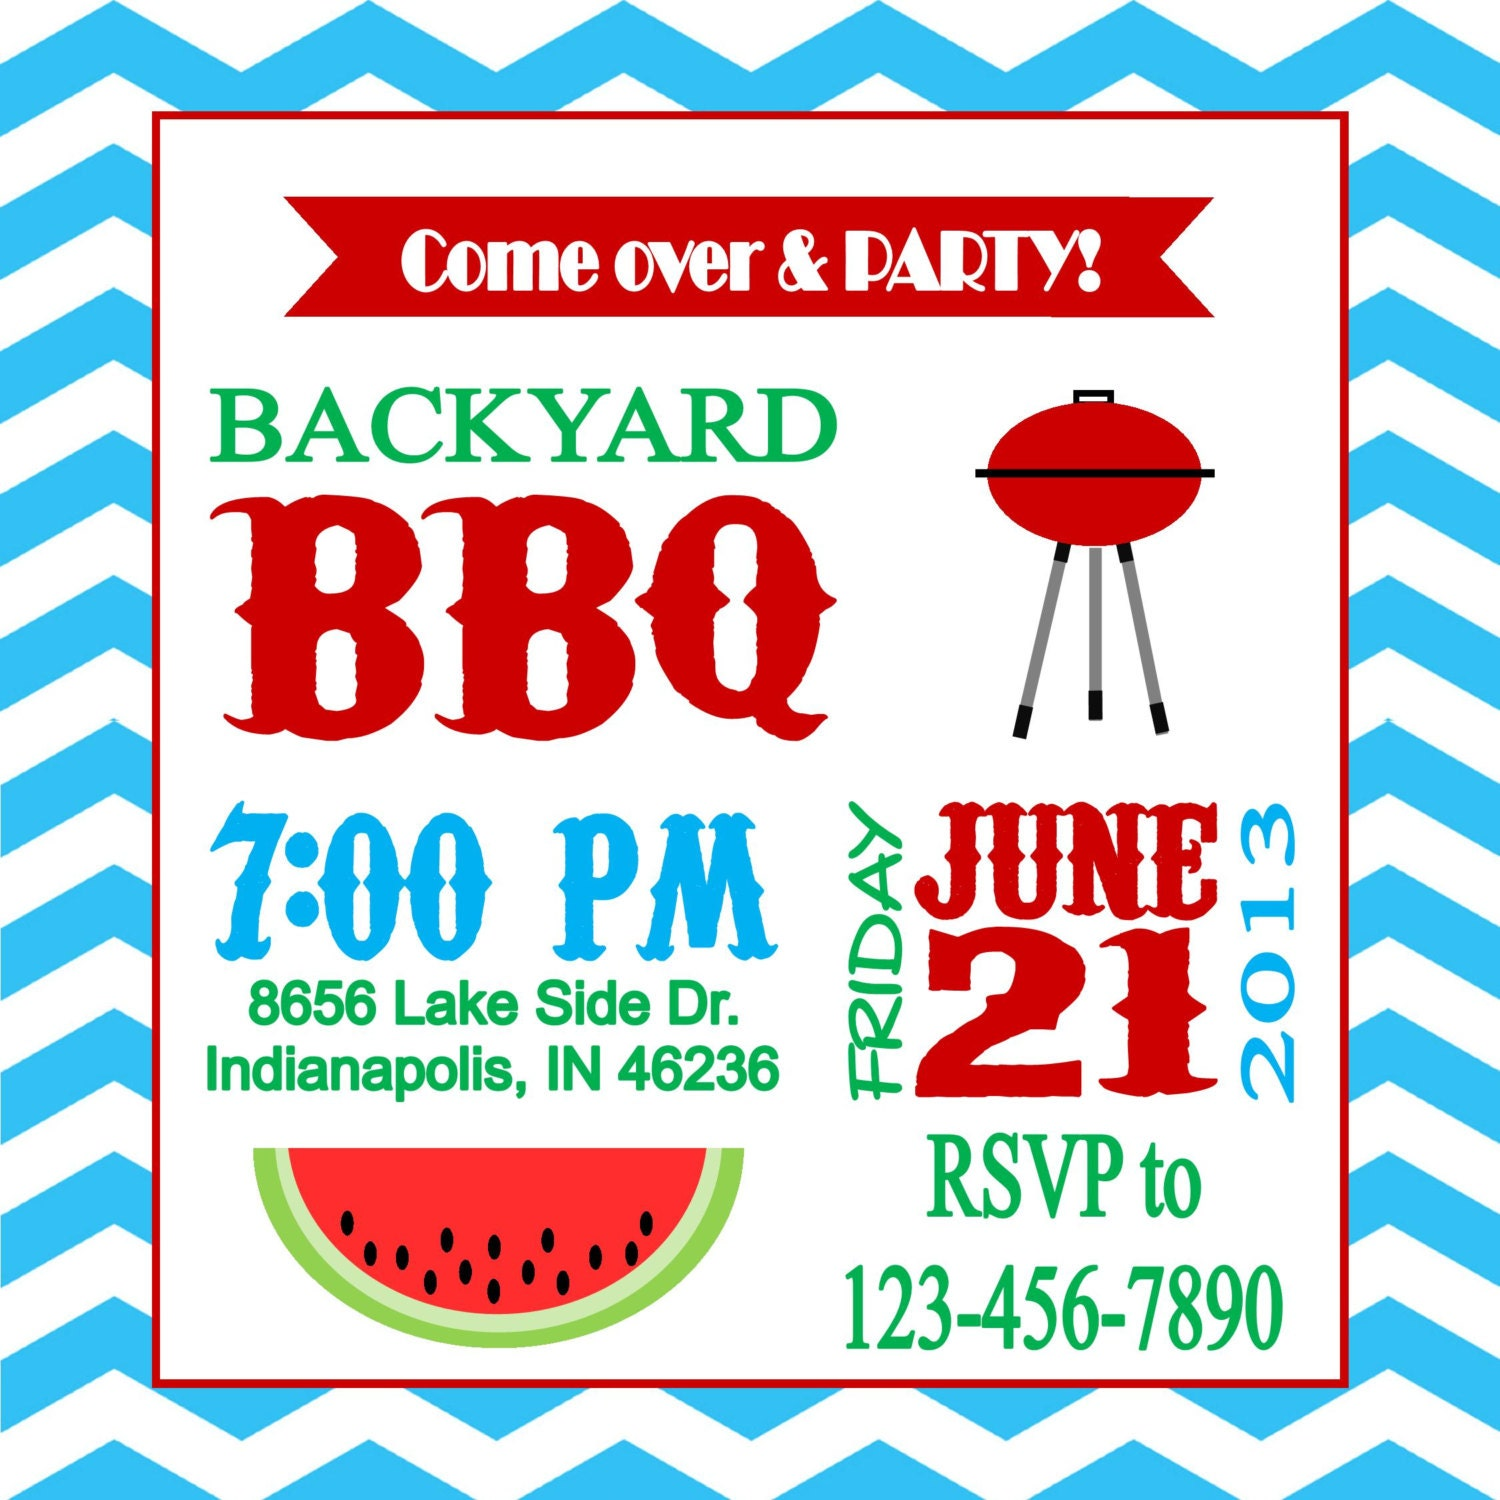 Backyard Bbq Invitation Custom Printable. Google Flyer Templates. Profile On A Resumes Template. Free Printable Guest List. Sample Cover Letter For Babysitting Job Template. Form Templates. Fold Over Place Card Template. Retail Order Form Template. What To Put Into A Resume Template